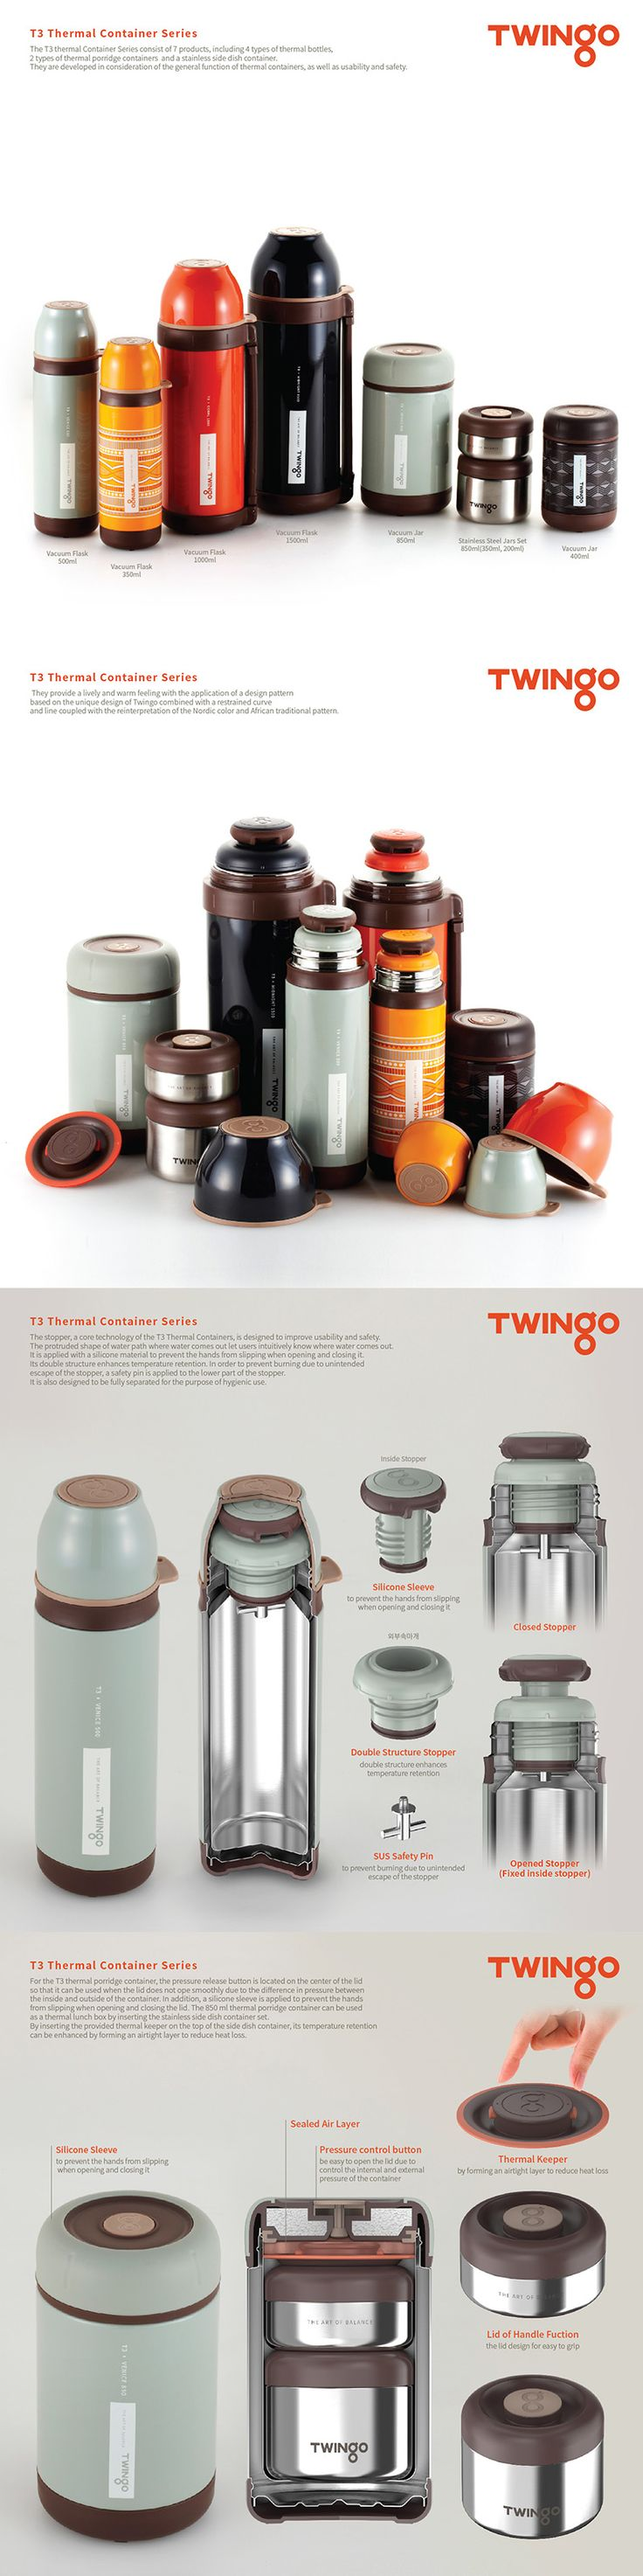 Twingo T3 Thermal Container Series, Vacuum flask, Thermos, Food container